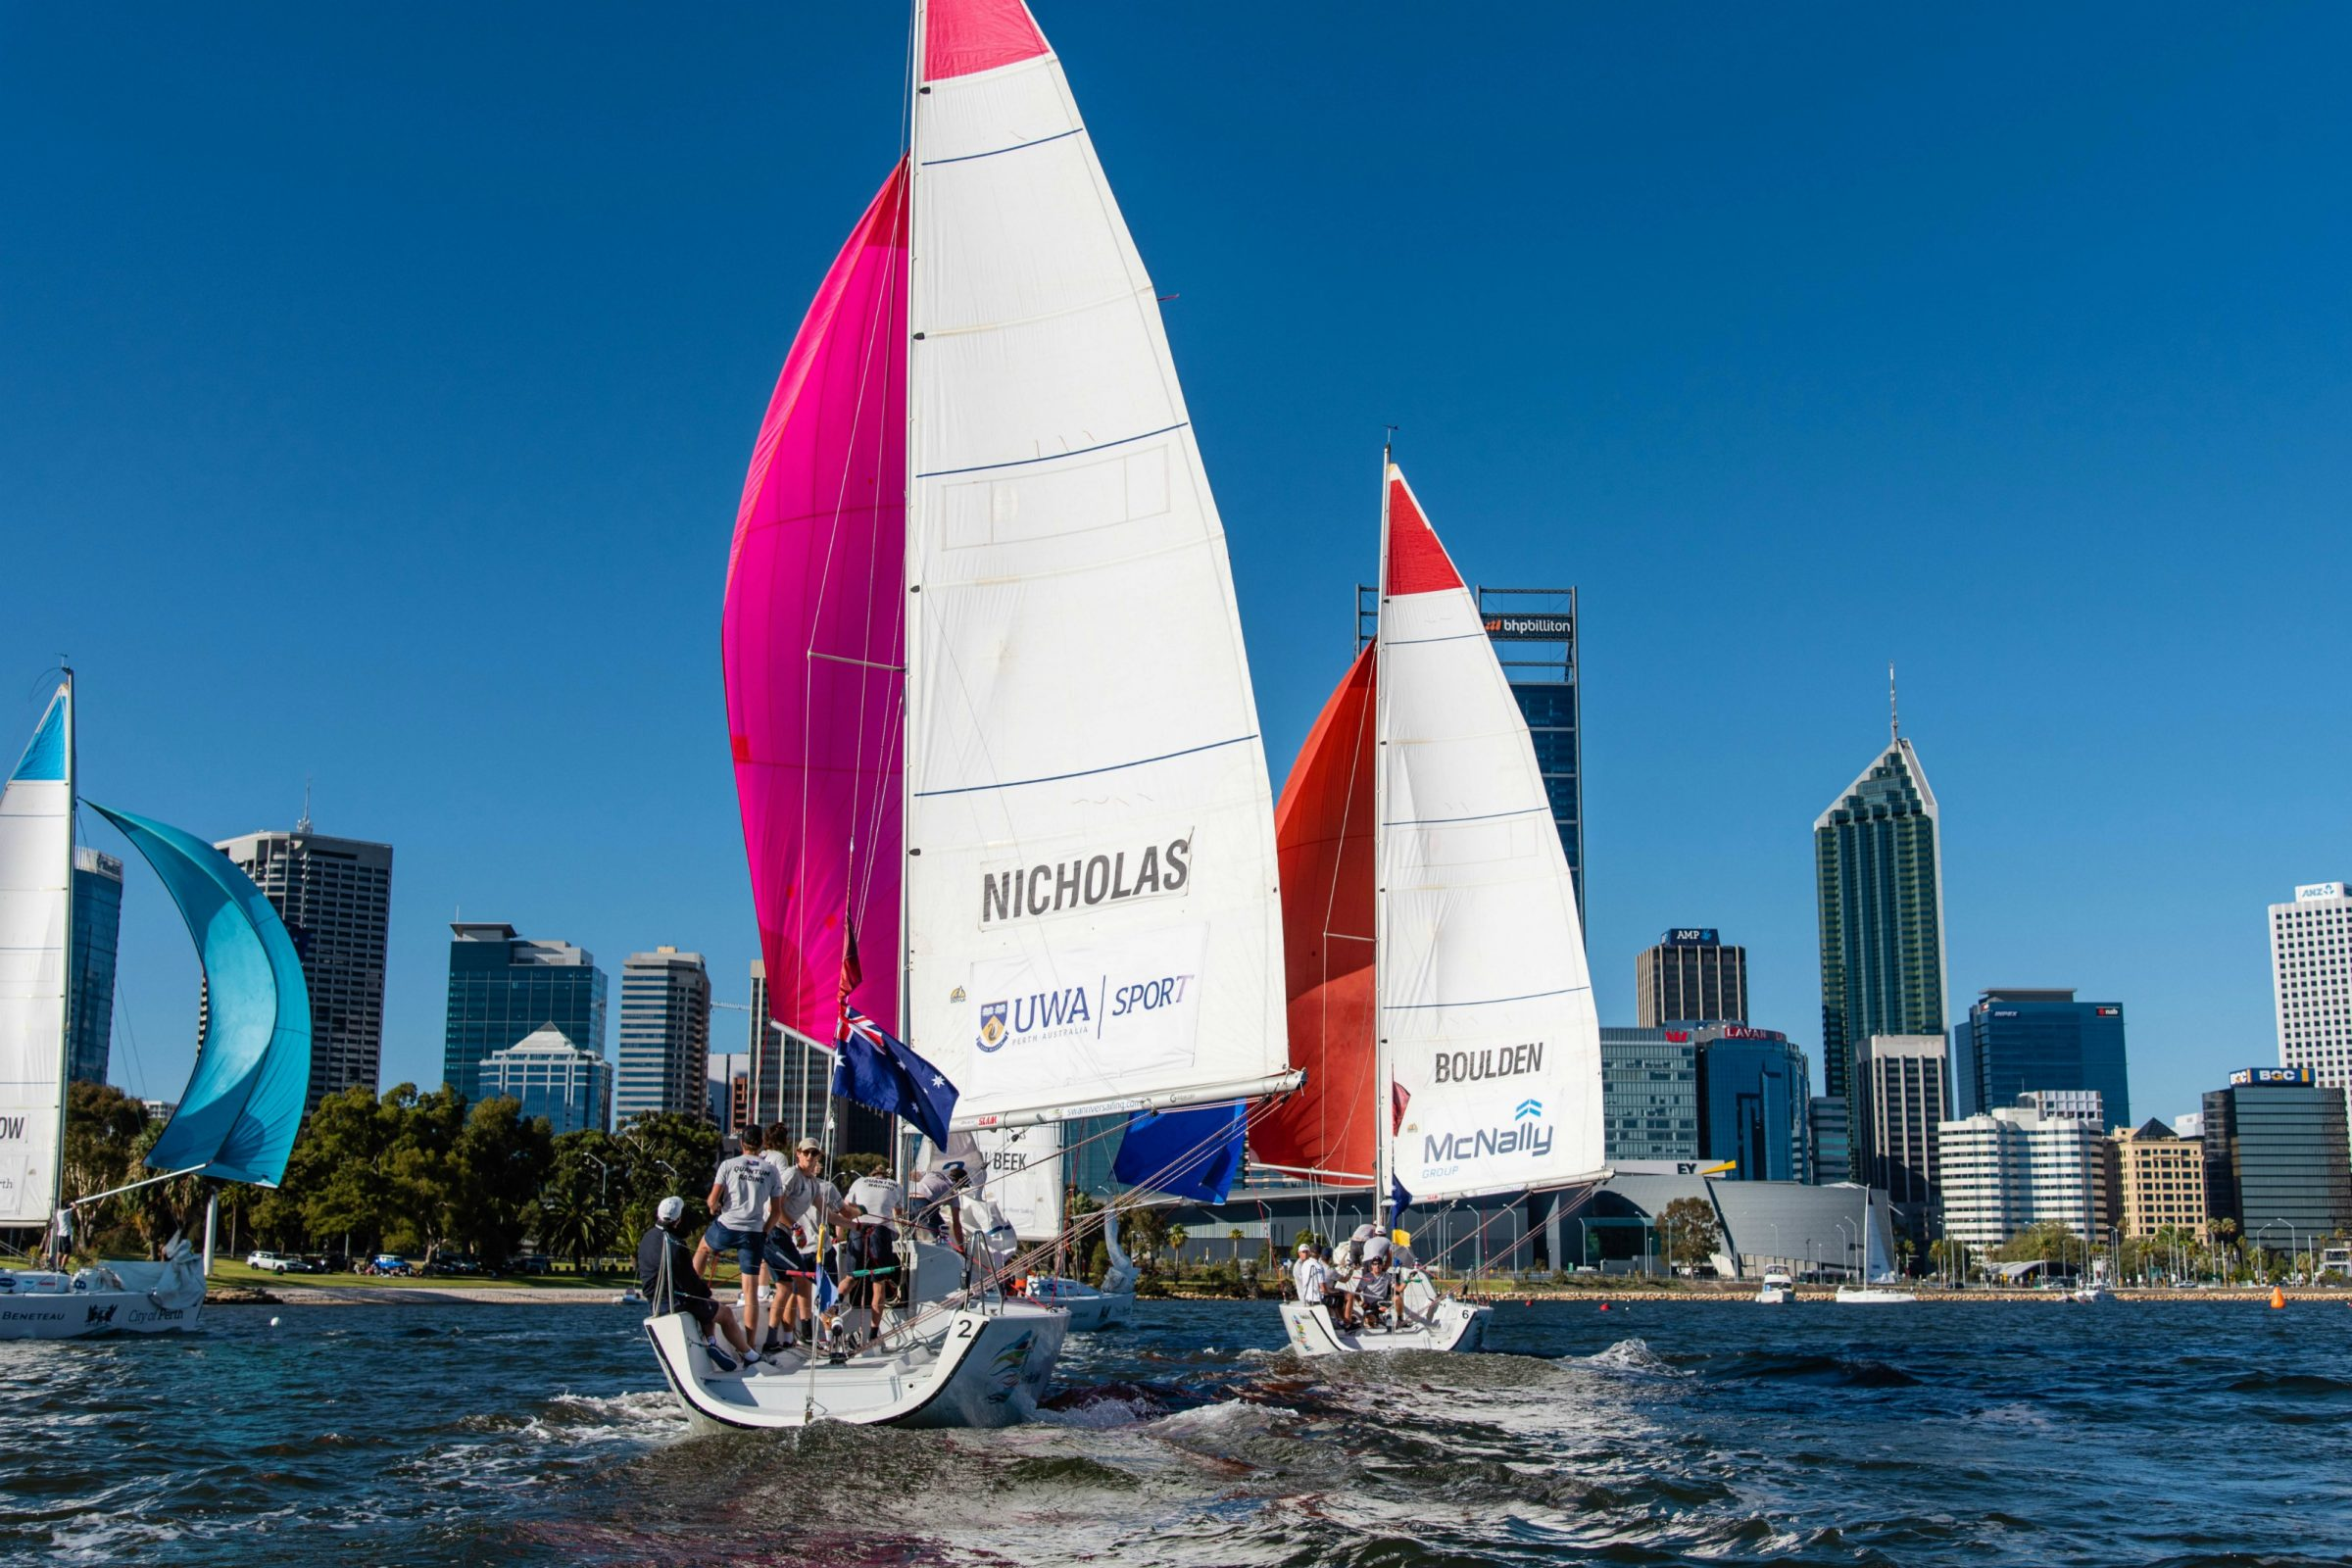 warren jones international youth regatta organised by swan river sailing sailed in perth, swan river sponsored by the city of perth in 2019, a youth international match racing event